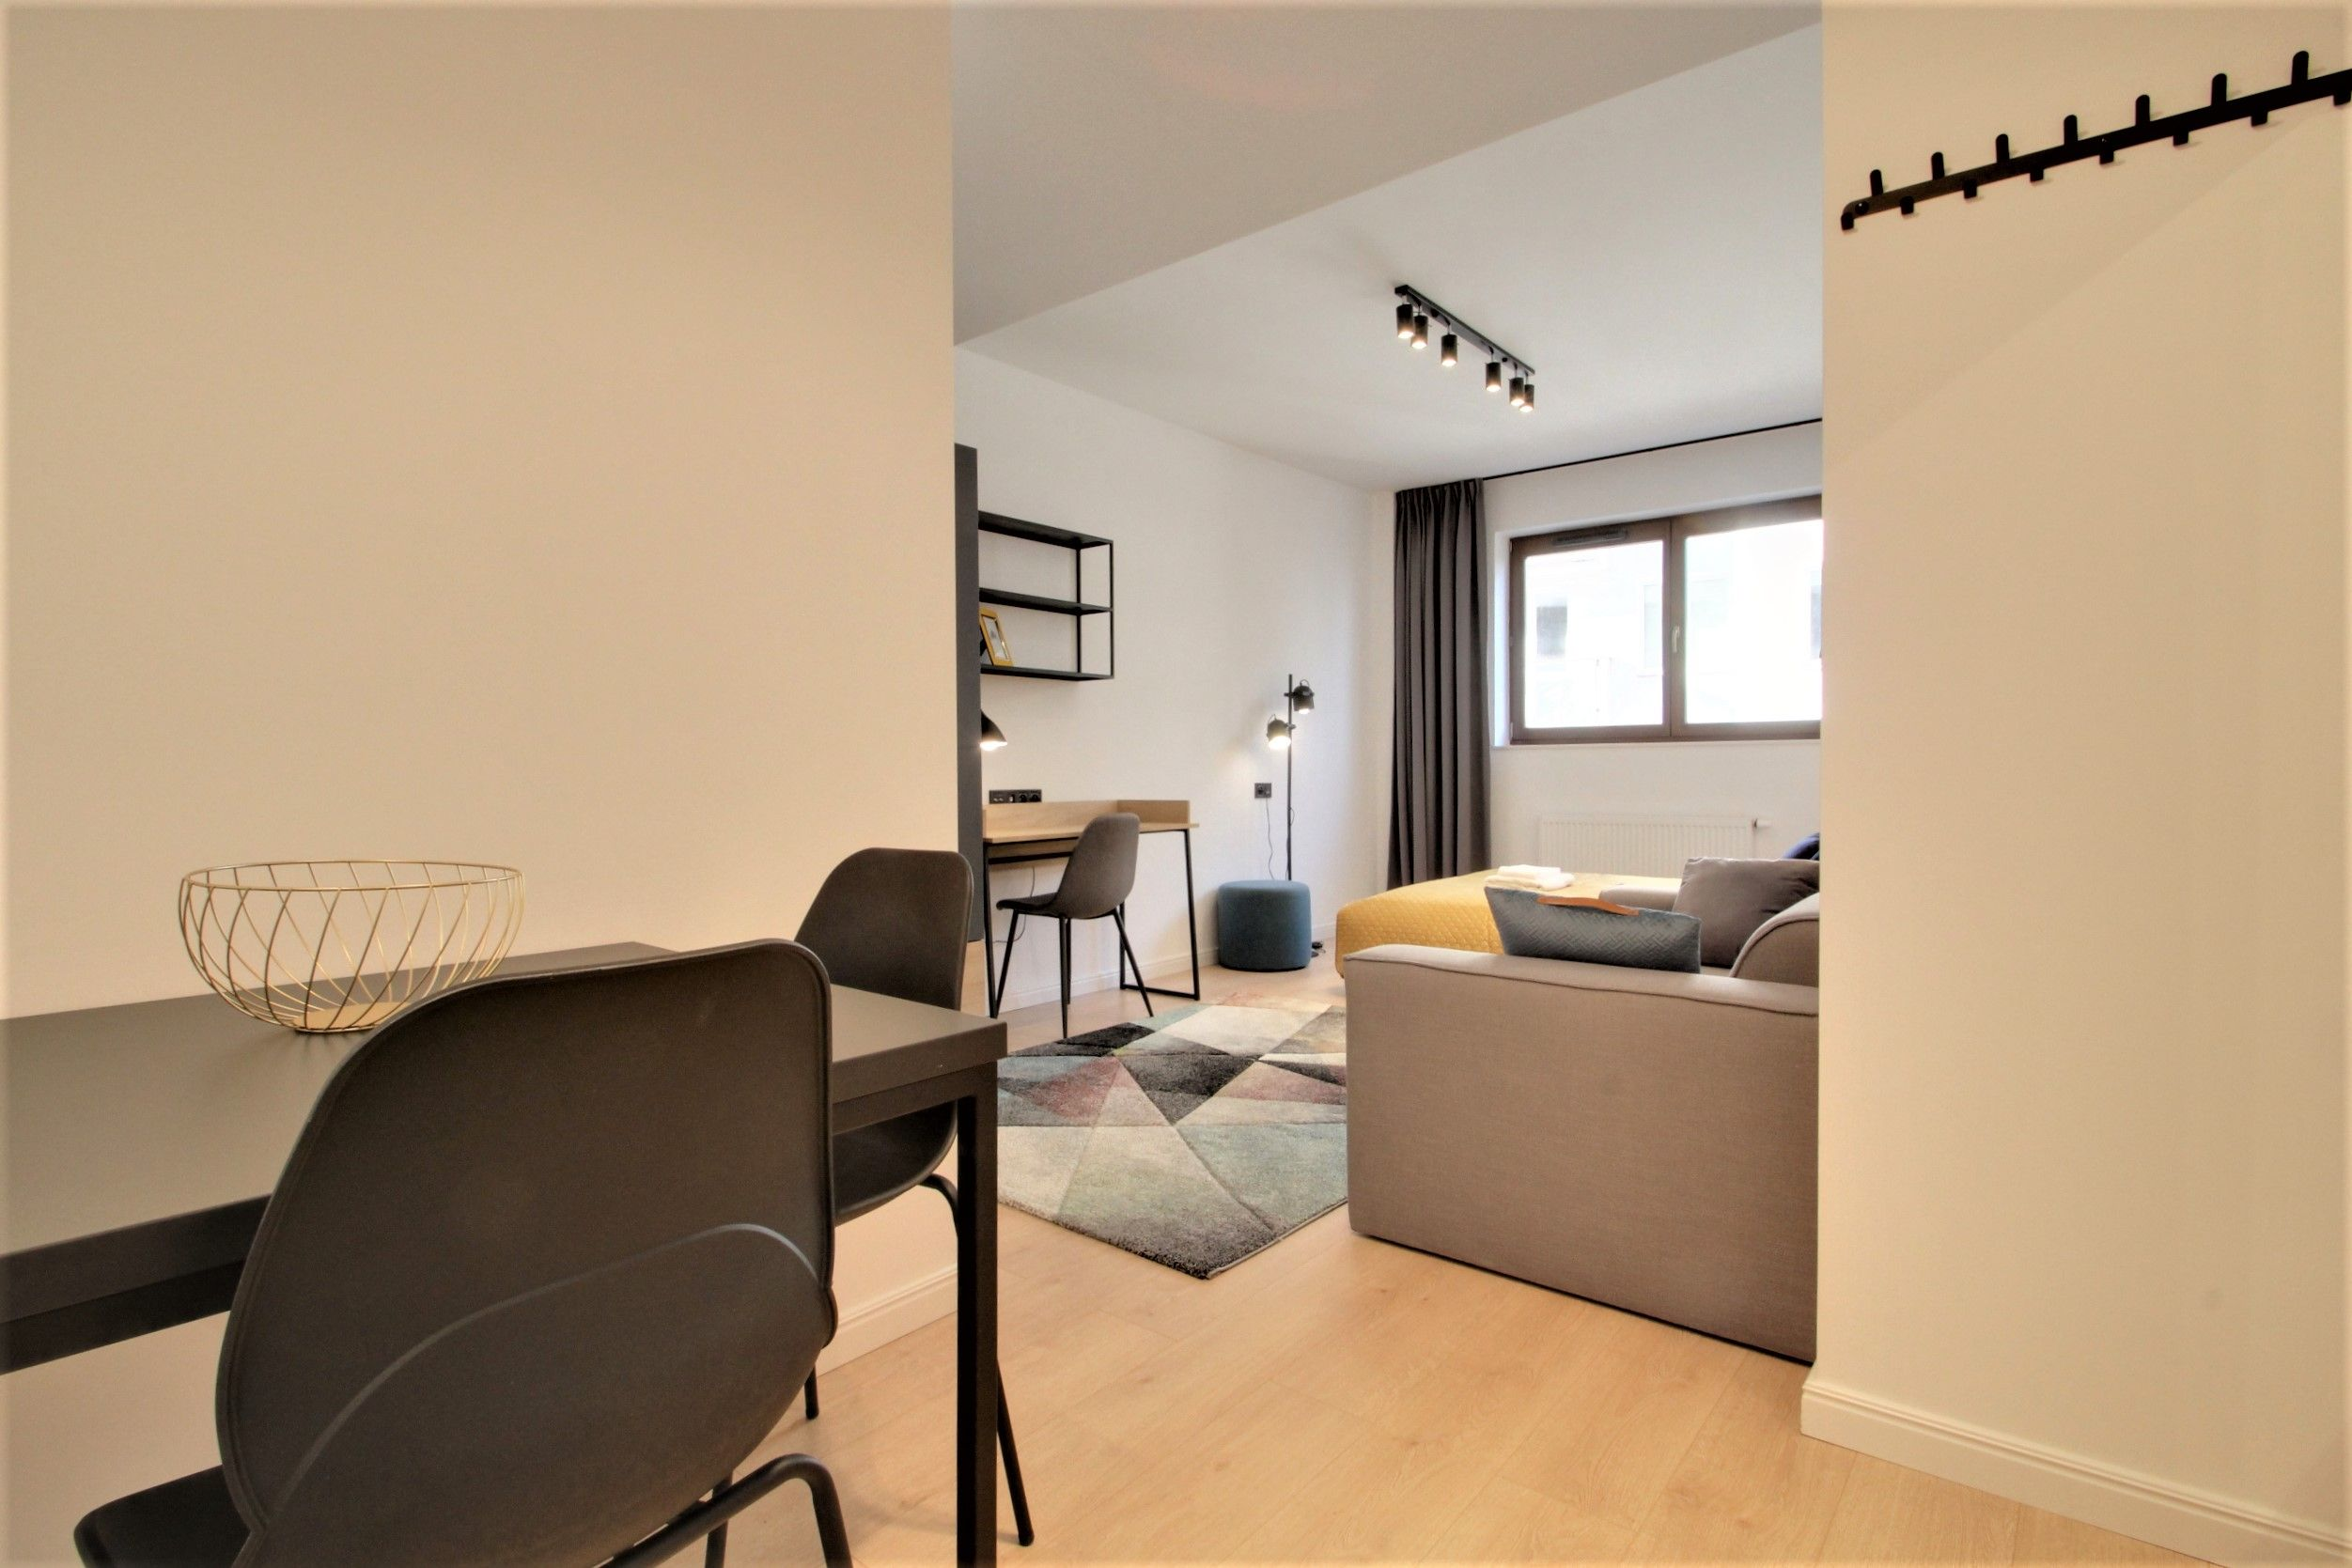 Studio - Small apartment to rent in Warsaw UPR-A-012-1